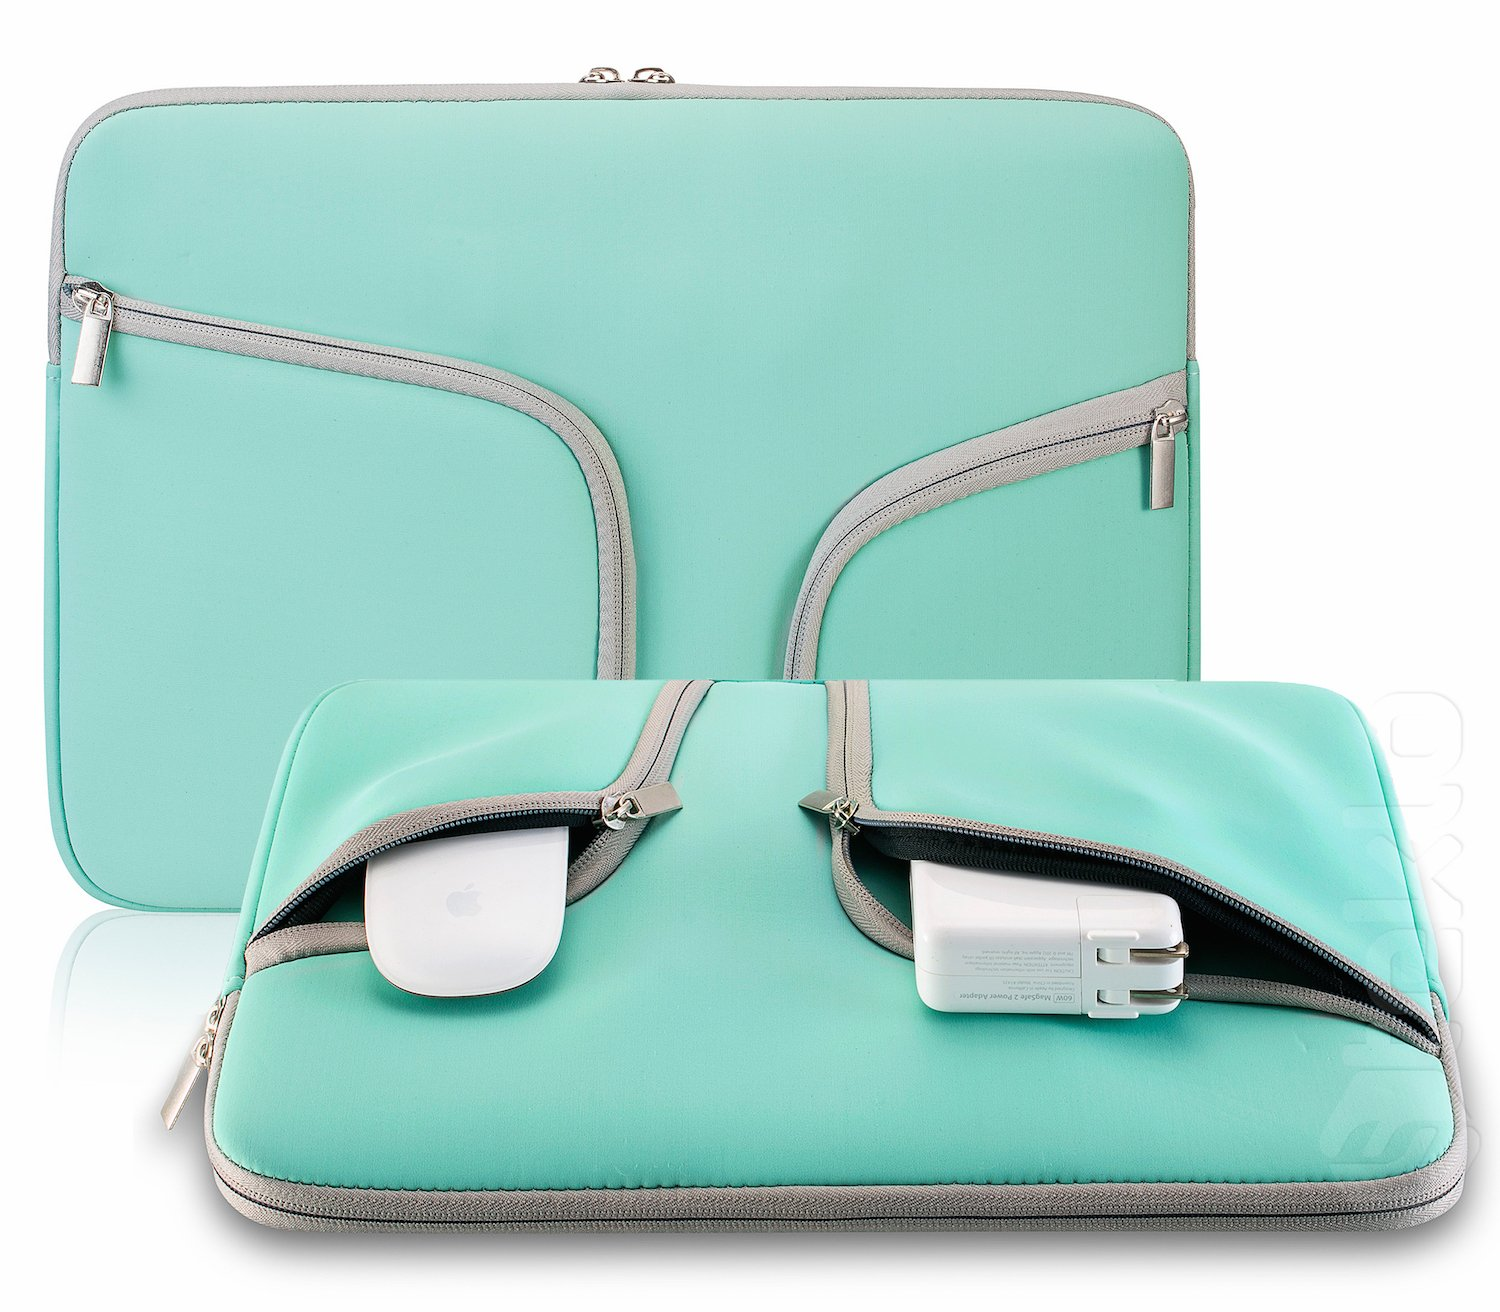 """Steklo - HOT Teal Neoprene Soft Sleeve Case Bag for All Laptop 15-inch & MacBook Pro 15.4"""" with or Without Retina Display - HOT Teal"""